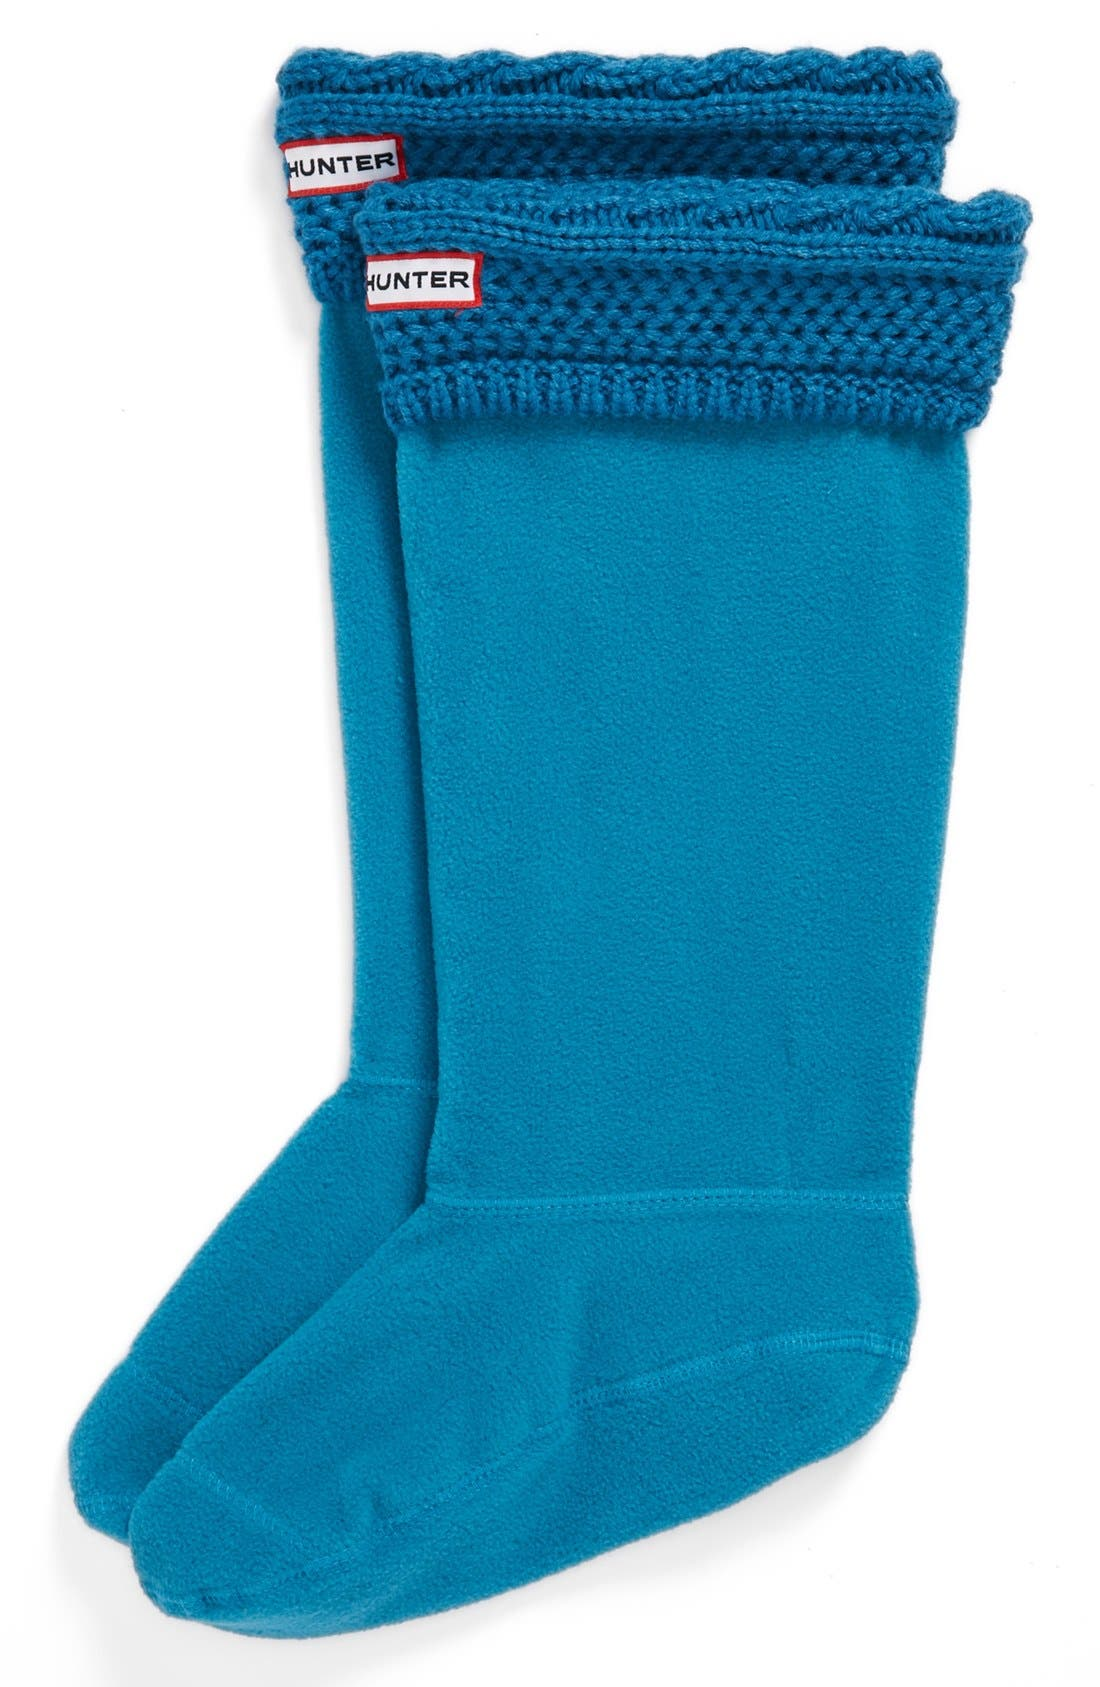 Alternate Image 1 Selected - Hunter 'Moss Cable' Tall Cuff Welly Socks